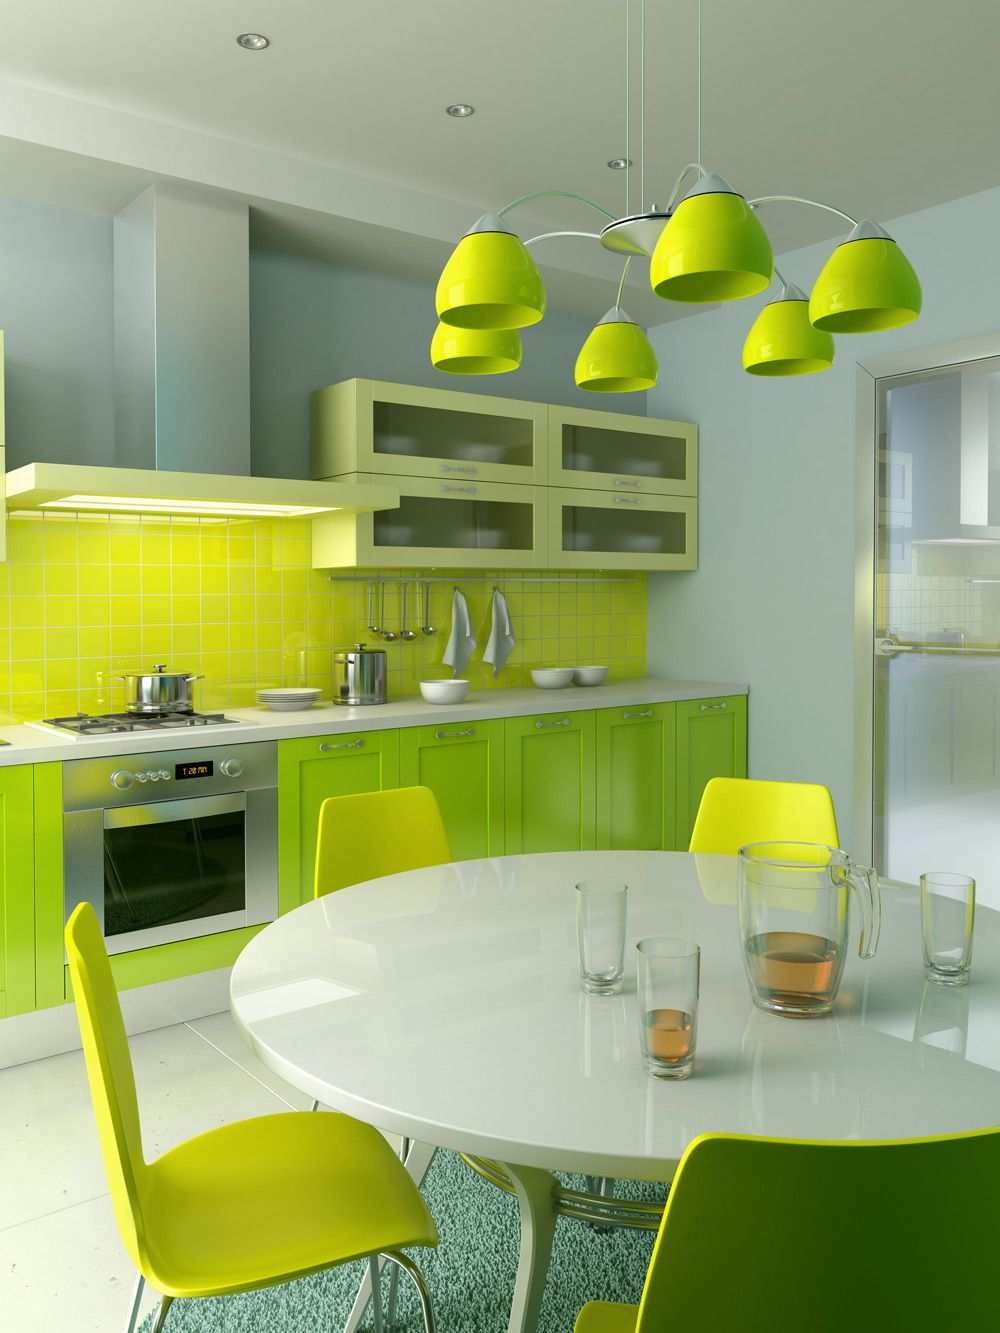 Uncategorized Green Kitchen Design Ideas 21 refreshing green kitchen design ideas kitchens ideas